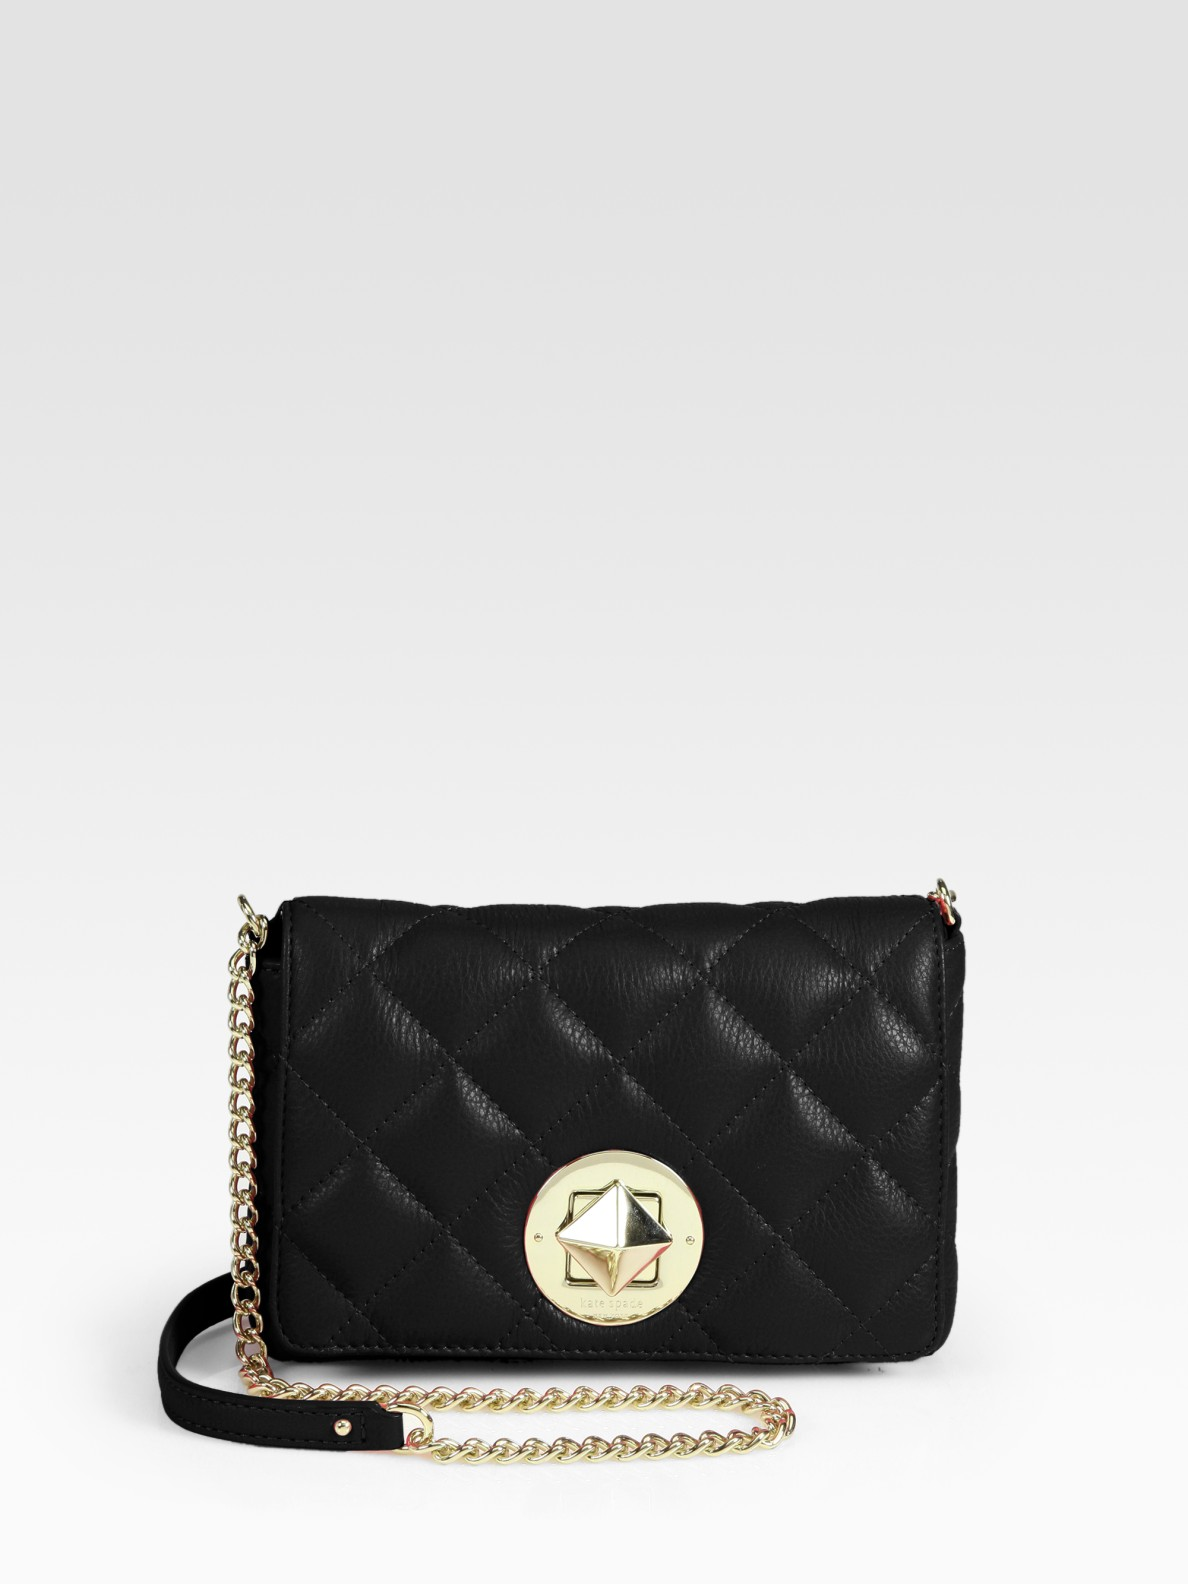 Lyst - Kate Spade Dove Quilted Leather Chain Crossbody in Black a9cfa7456c511